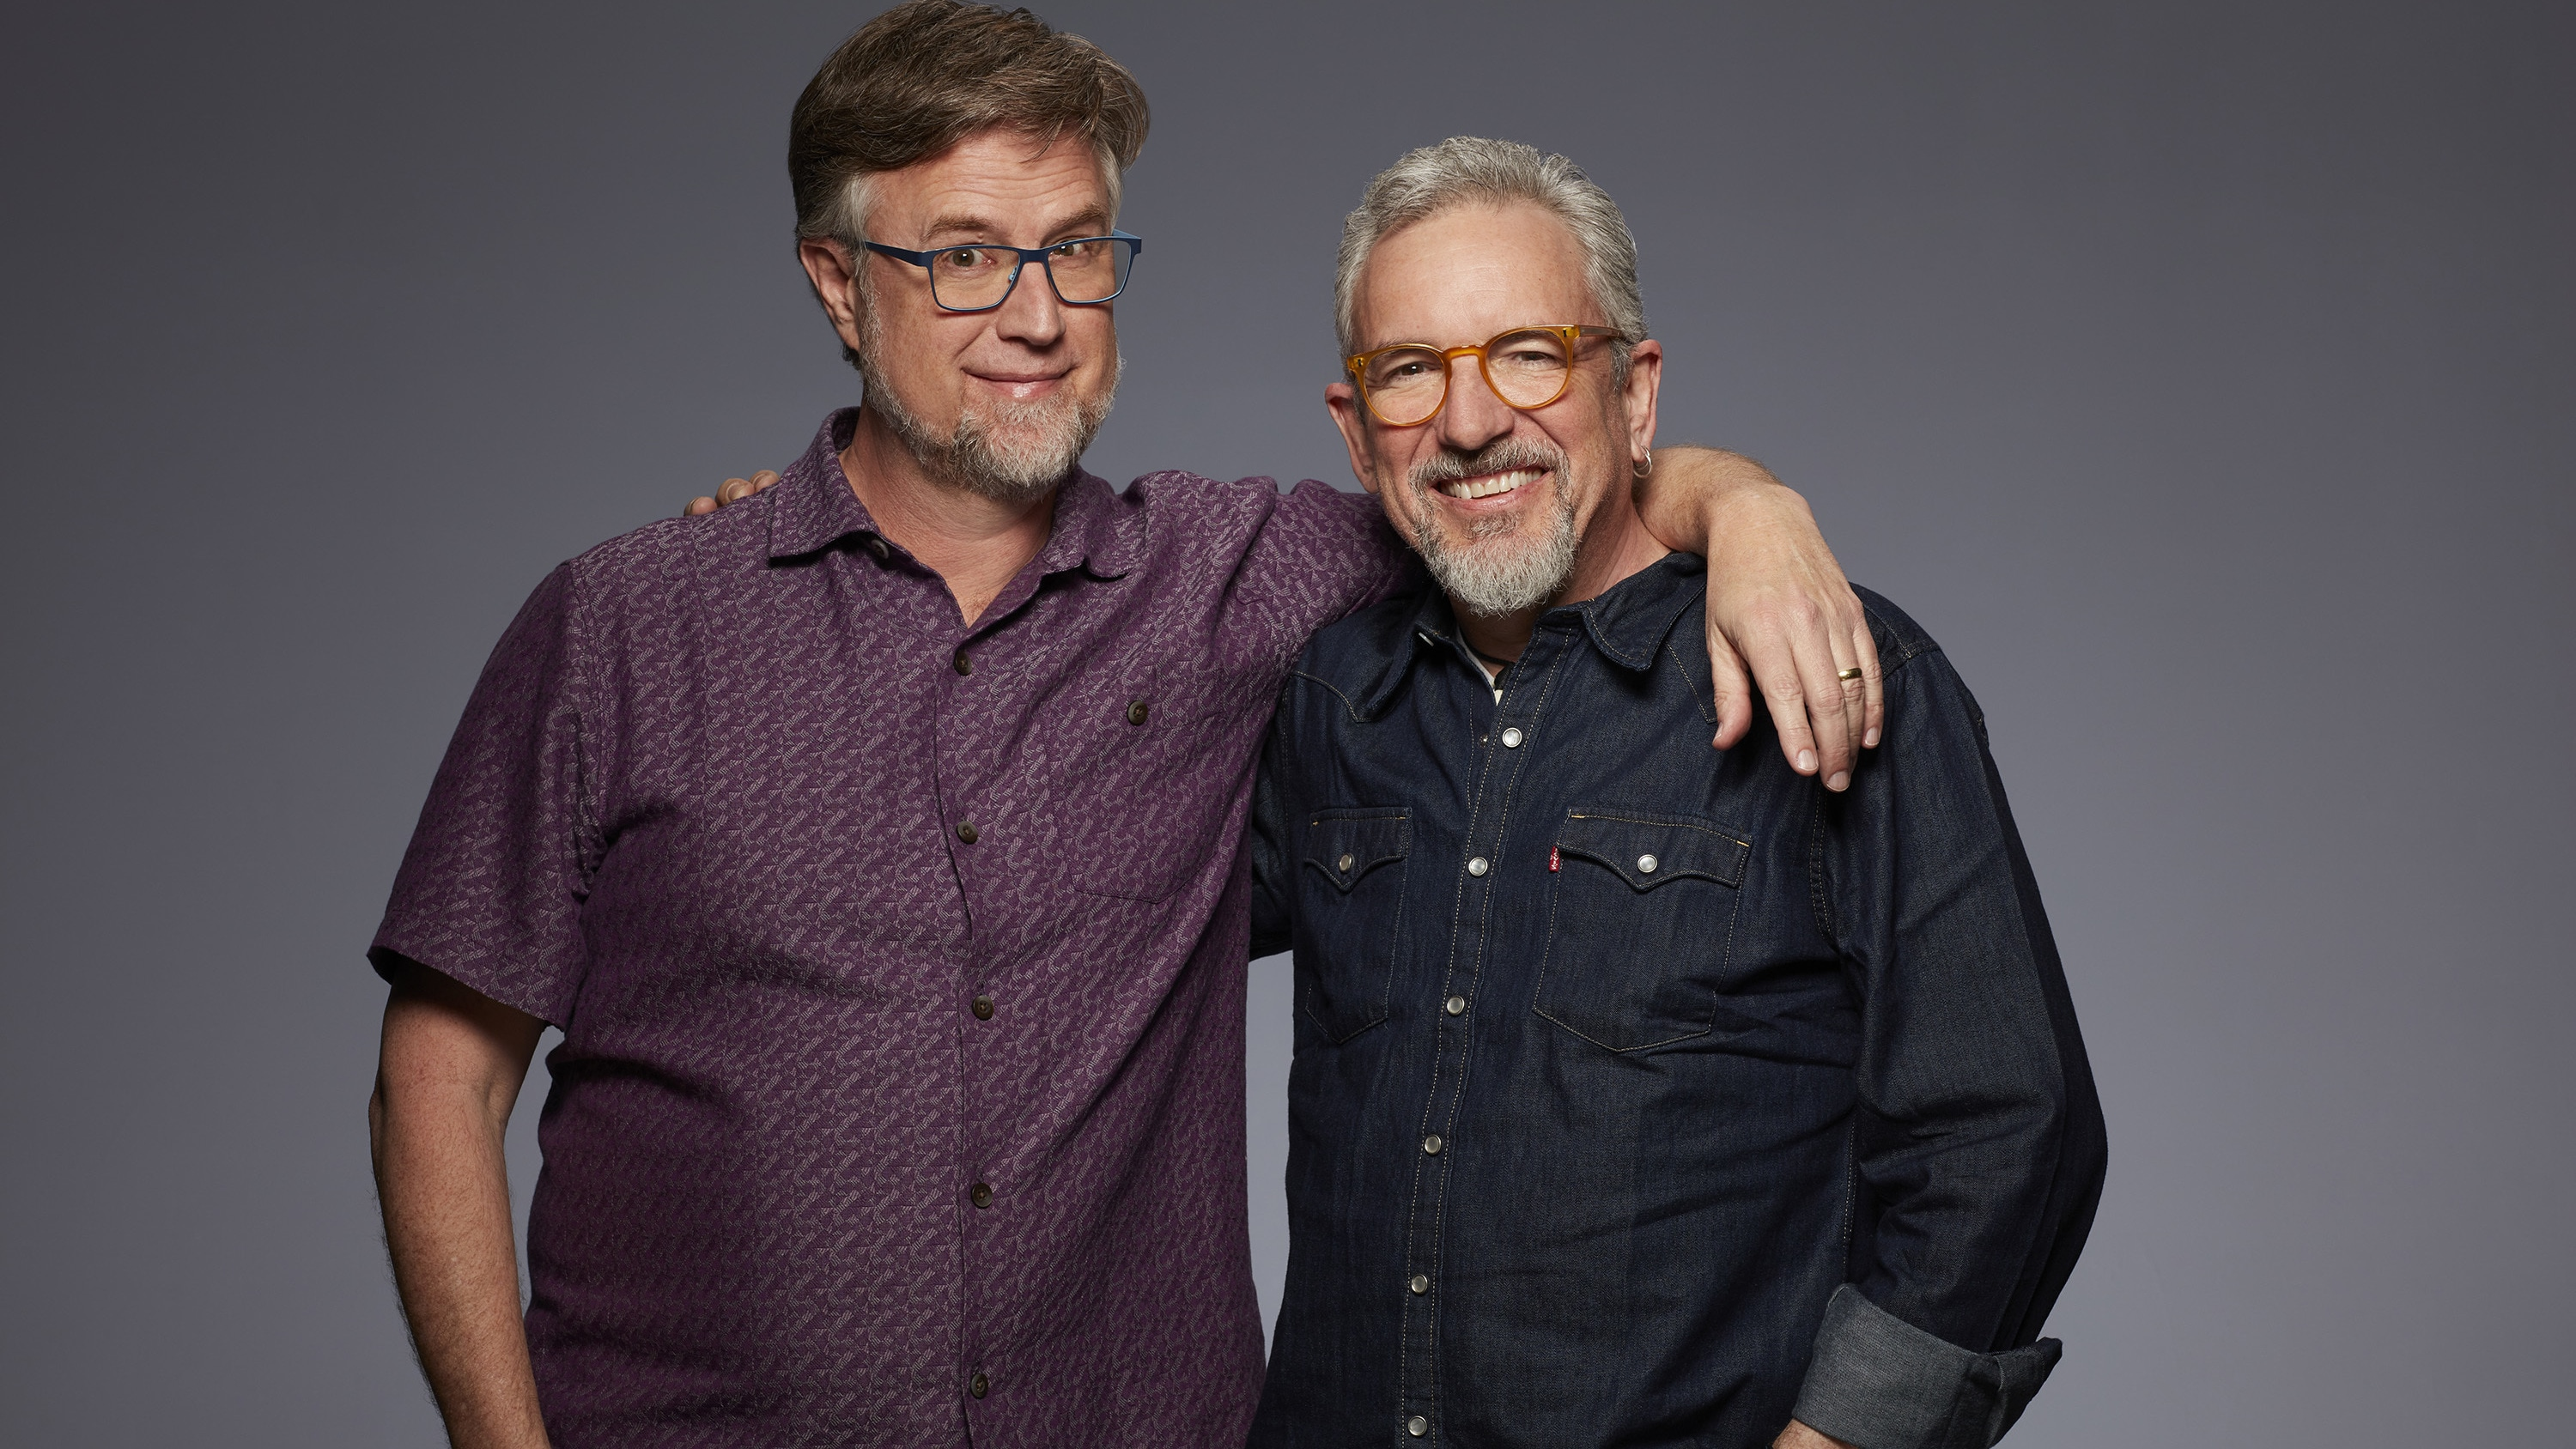 """Dan Povenmire and Jeff """"Swampy"""" Marsh, Creators/Executive Producers of Disney's """"Phineas and Ferb The Movie: Candace Against The Universe"""". (Disney+/Craig Sjodin)"""